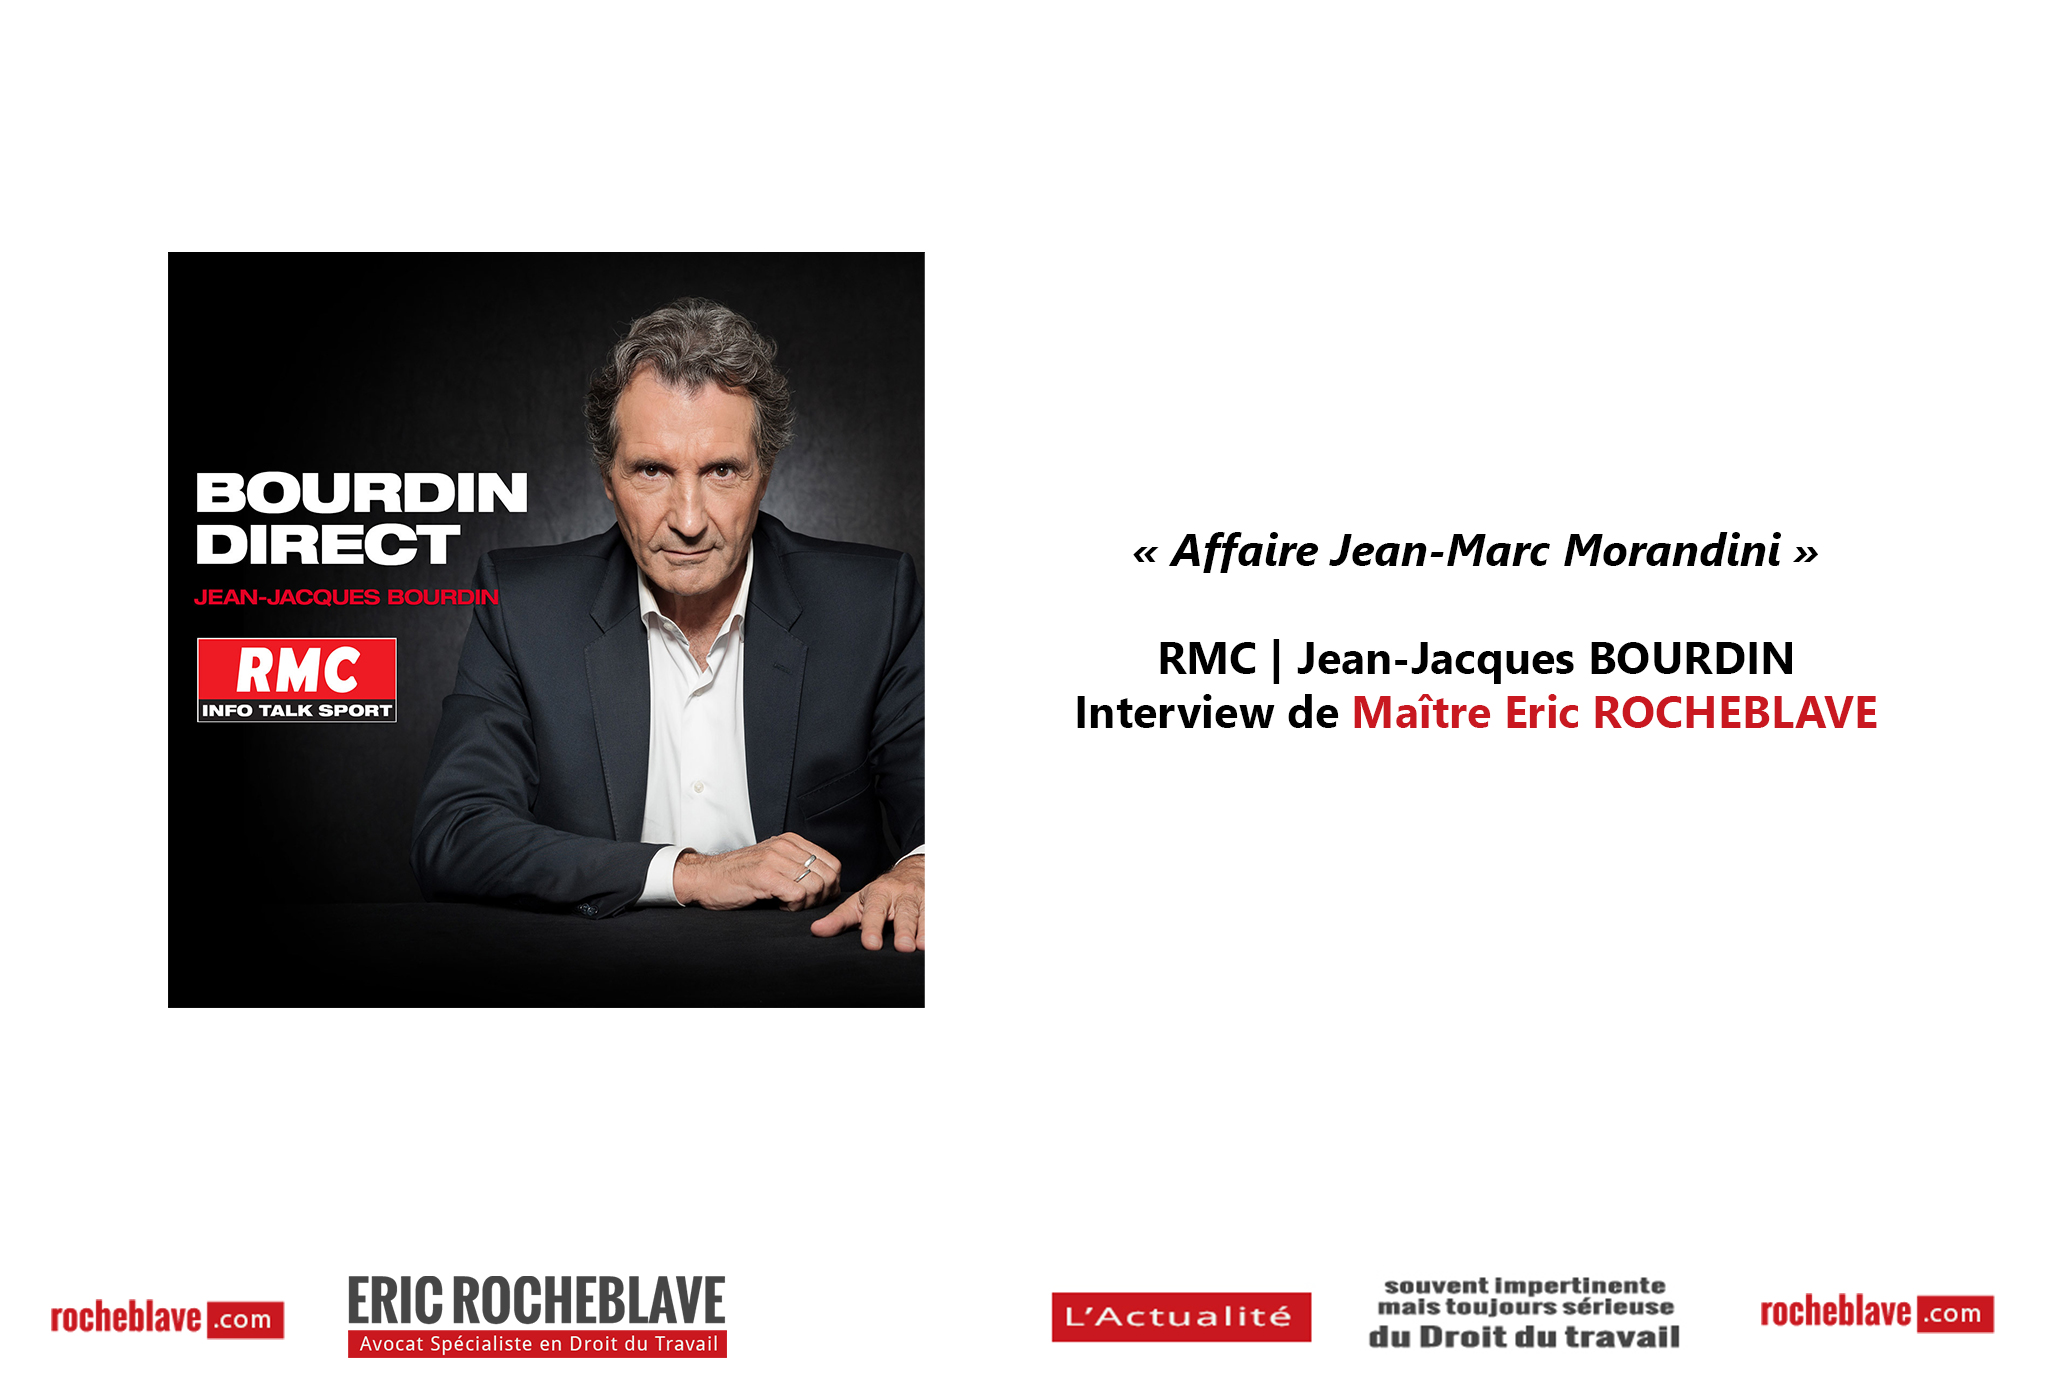 « Affaire Jean-Marc Morandini »  RMC | Jean-Jacques BOURDIN - Interview de Maître Eric ROCHEBLAVE